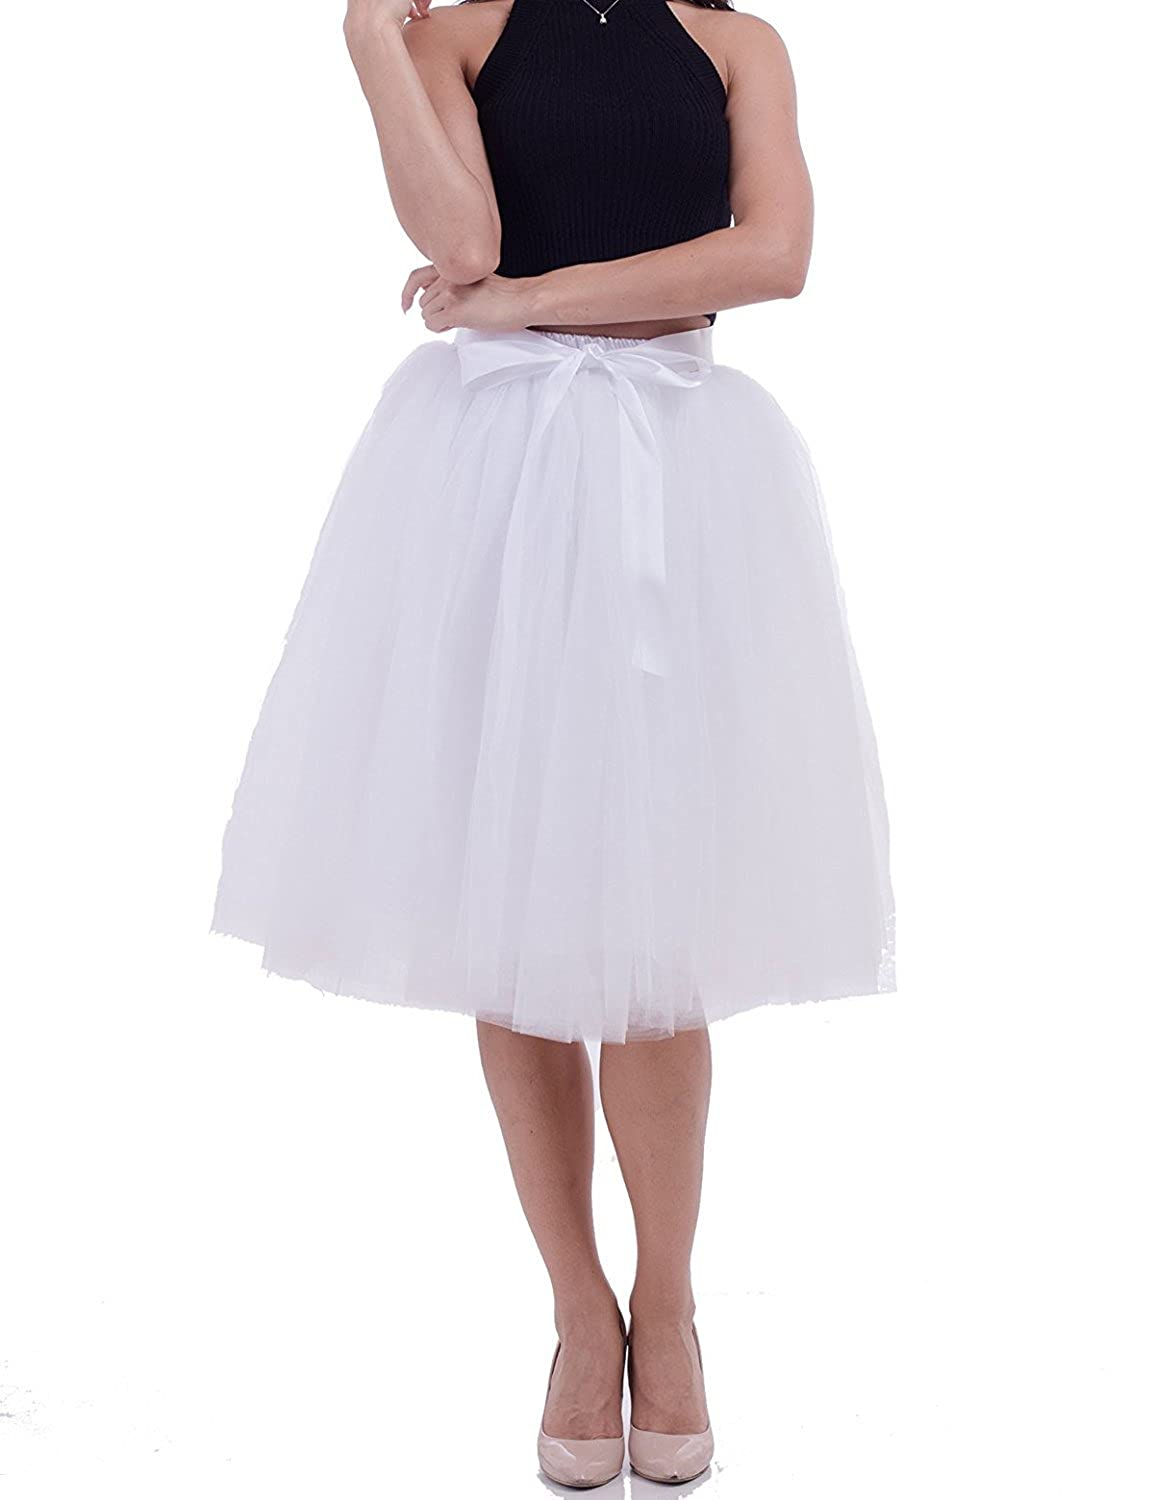 6dd37b02fc FARBIC - All of our adult tutu skirts are made of high quality tulle , and  adhere to the highest quality standards. There is no risk of receiving a  cheap, ...